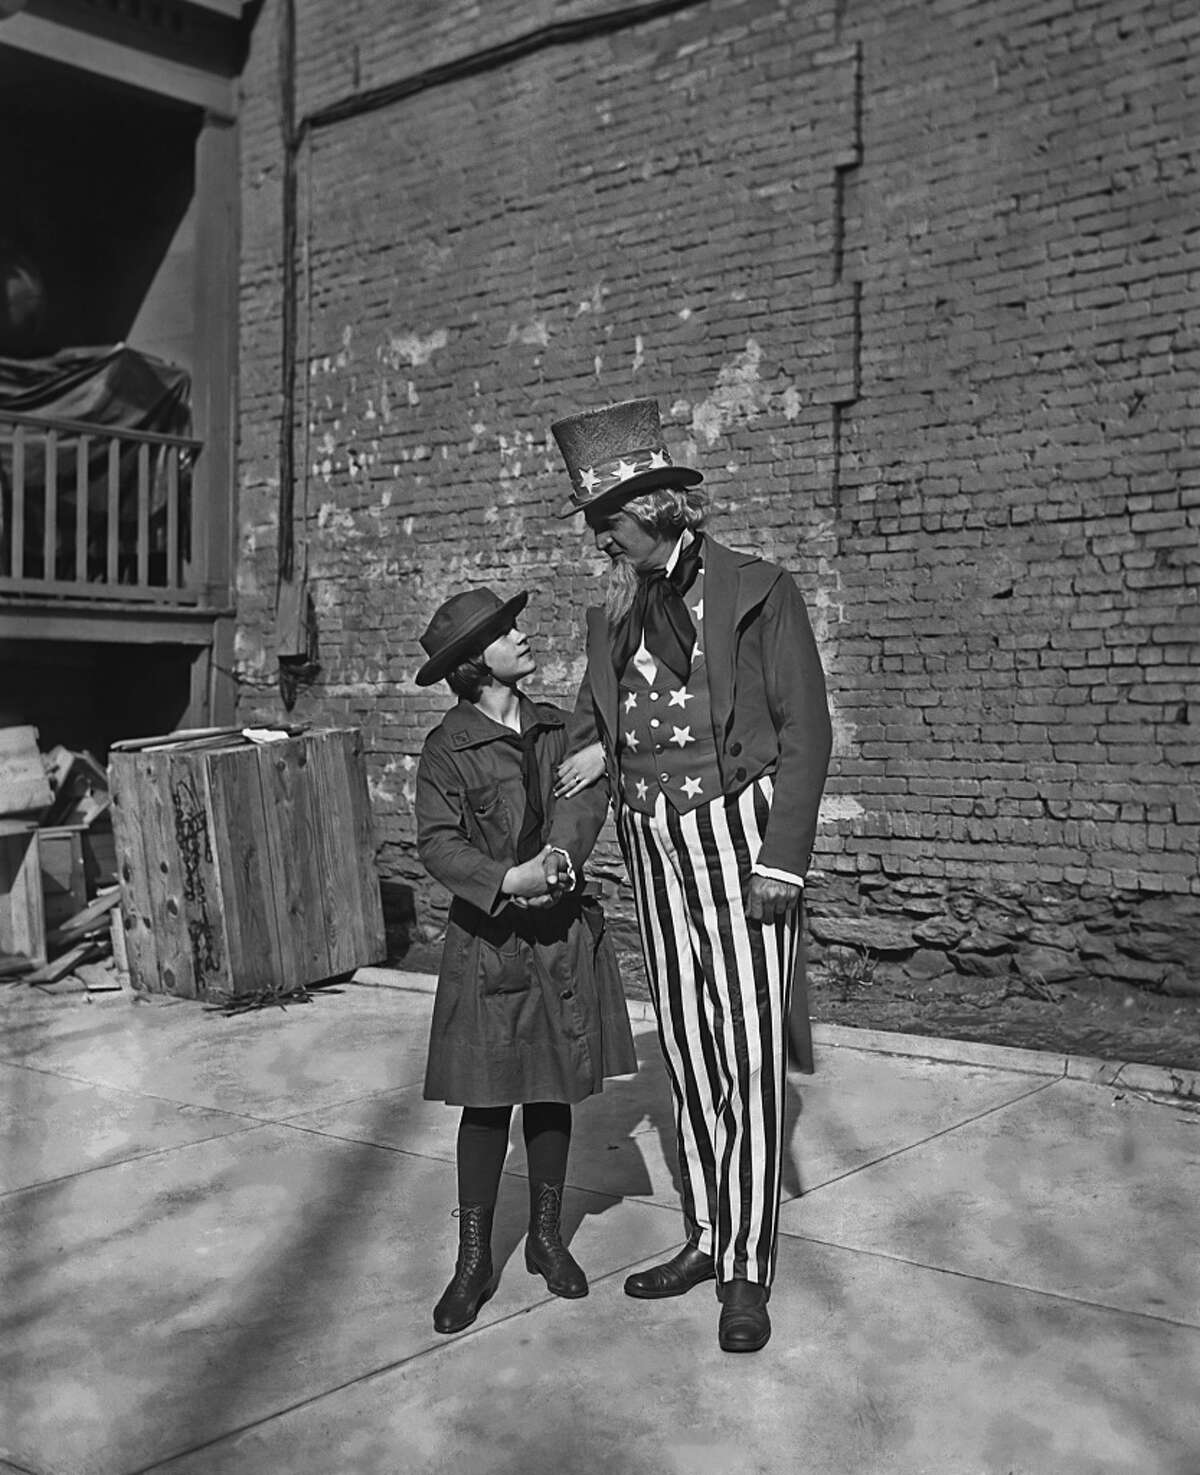 Girl Scouts don't just sell cookies. Here's a look at their activities dating back to 1914, the year this Girl Scout had her photo taken with Uncle Sam.